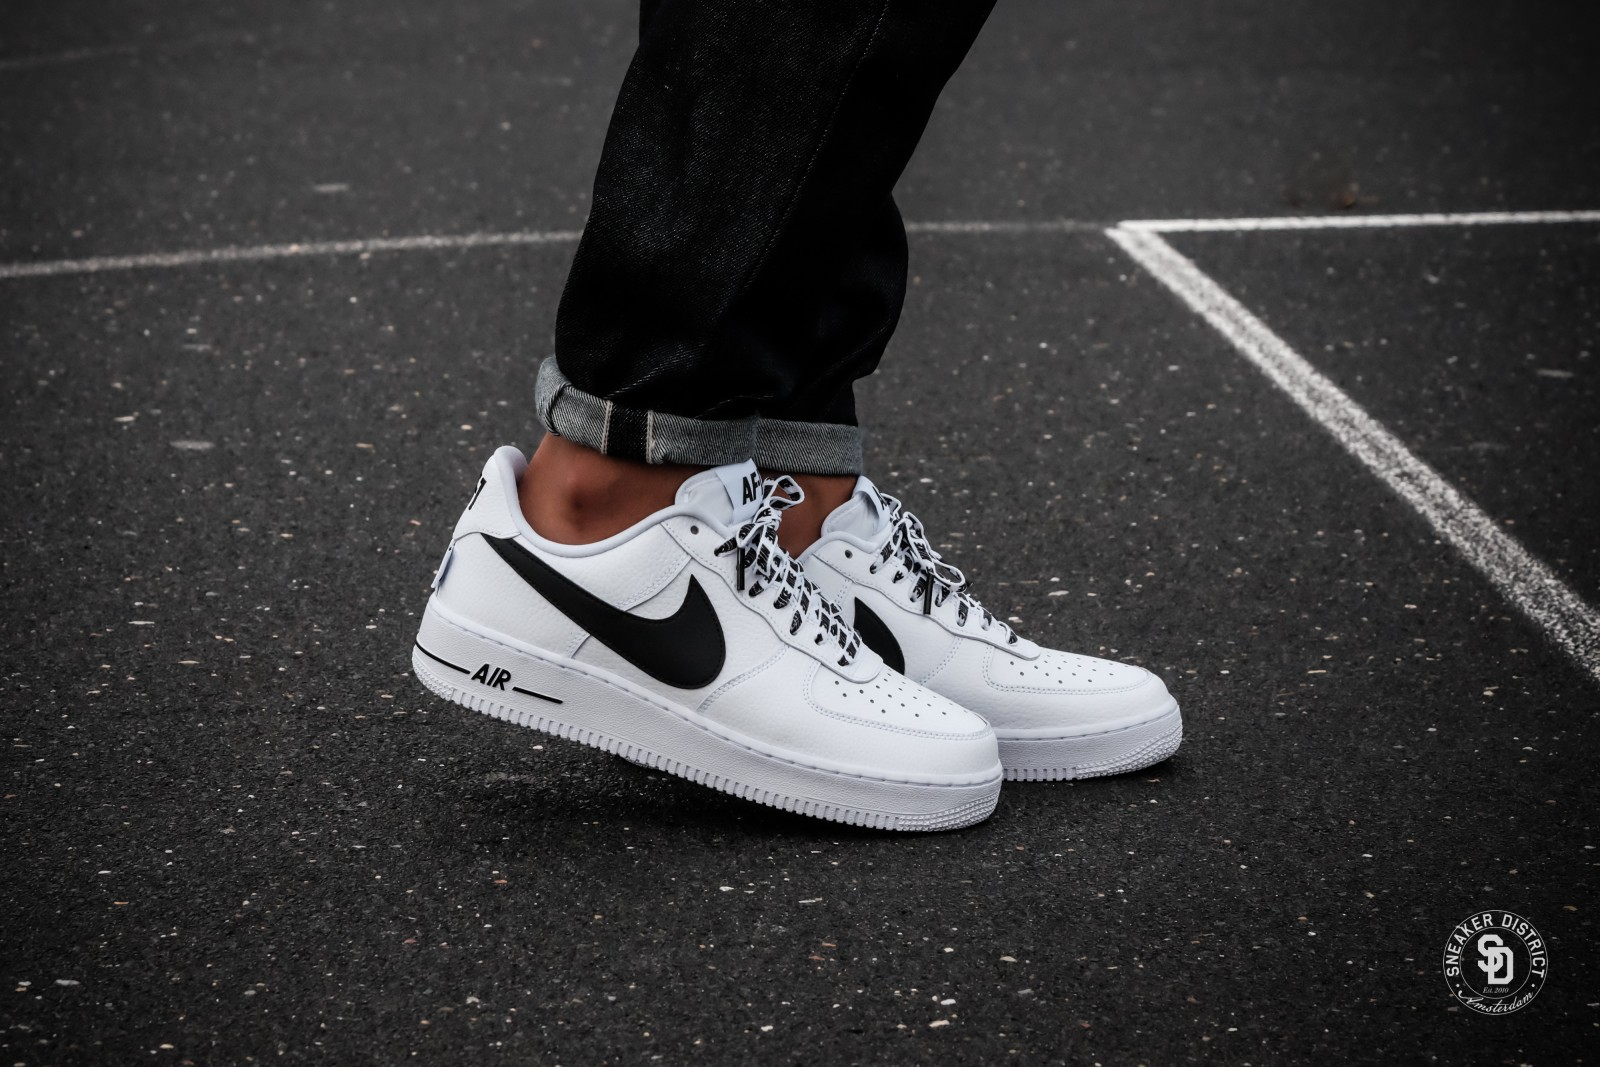 nike air force 1 07 lv8 bianche